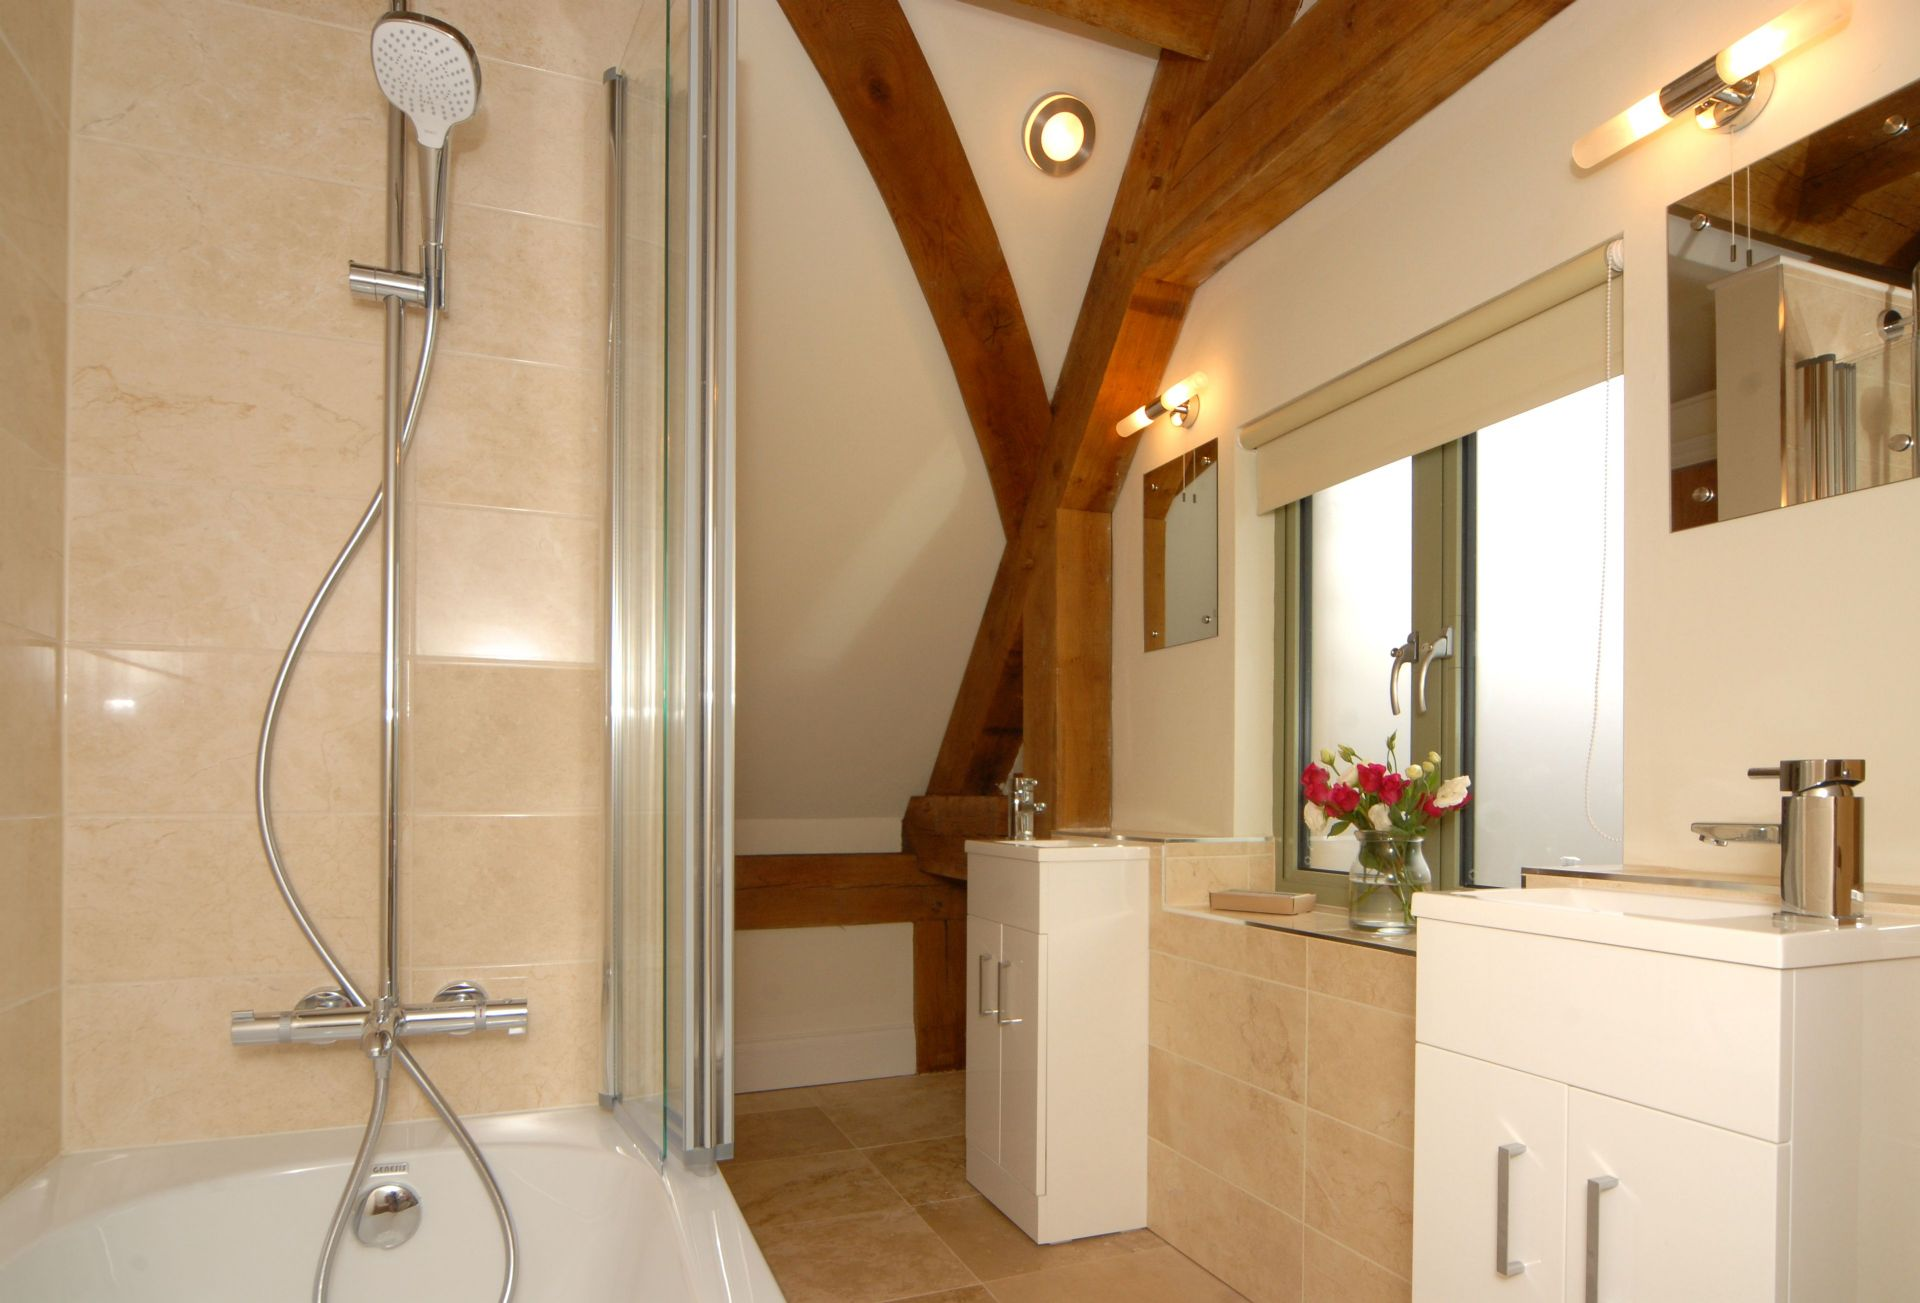 Hiron's Piece: A view of a Bathroom